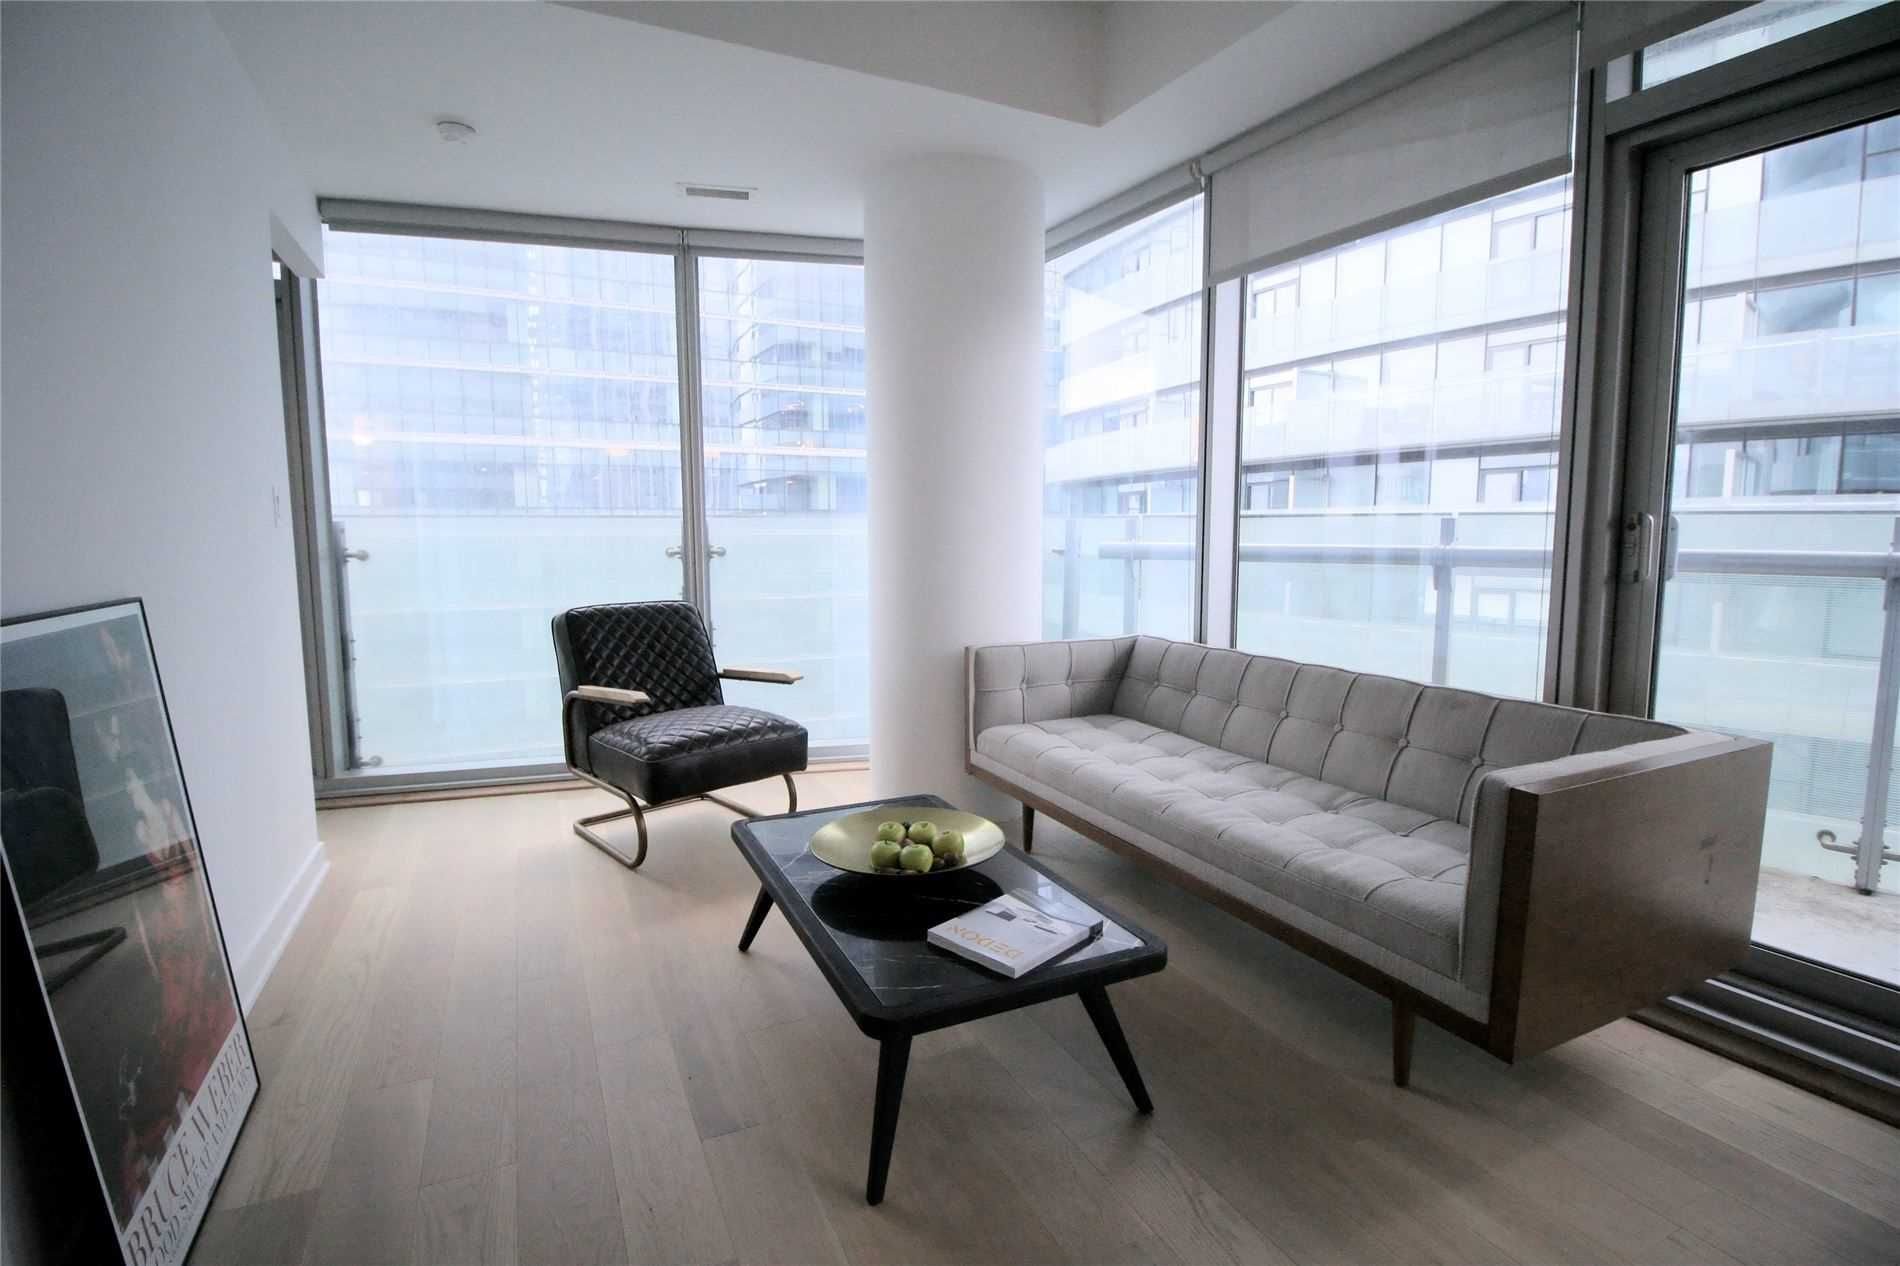 12 York St, unit 2810 for sale in Toronto - image #2